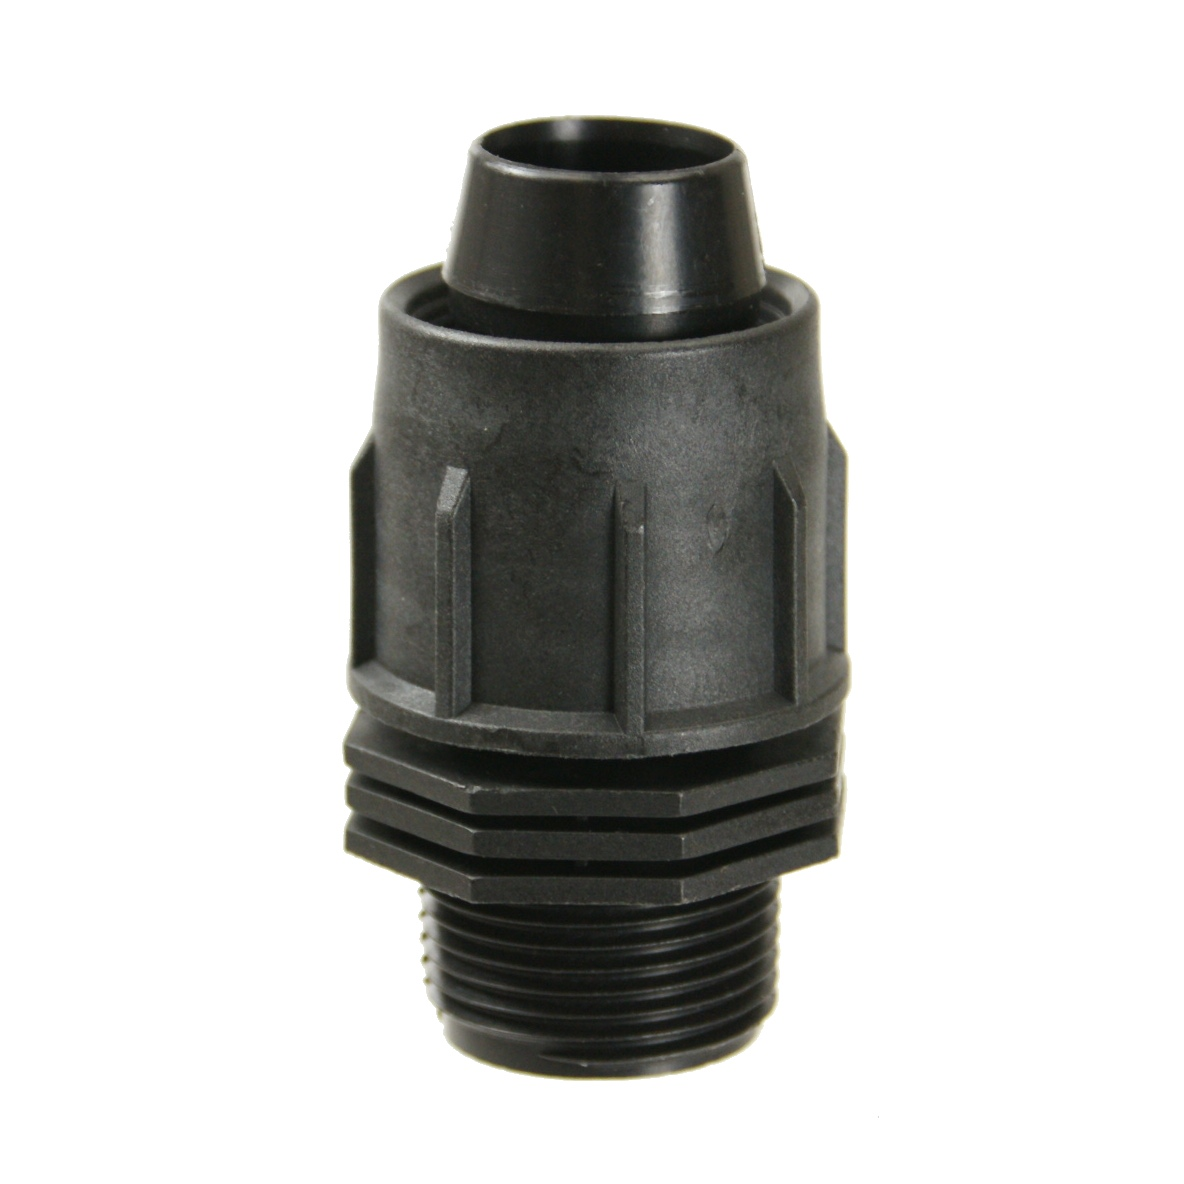 Perma-Loc Tubing Male Threads Adapter